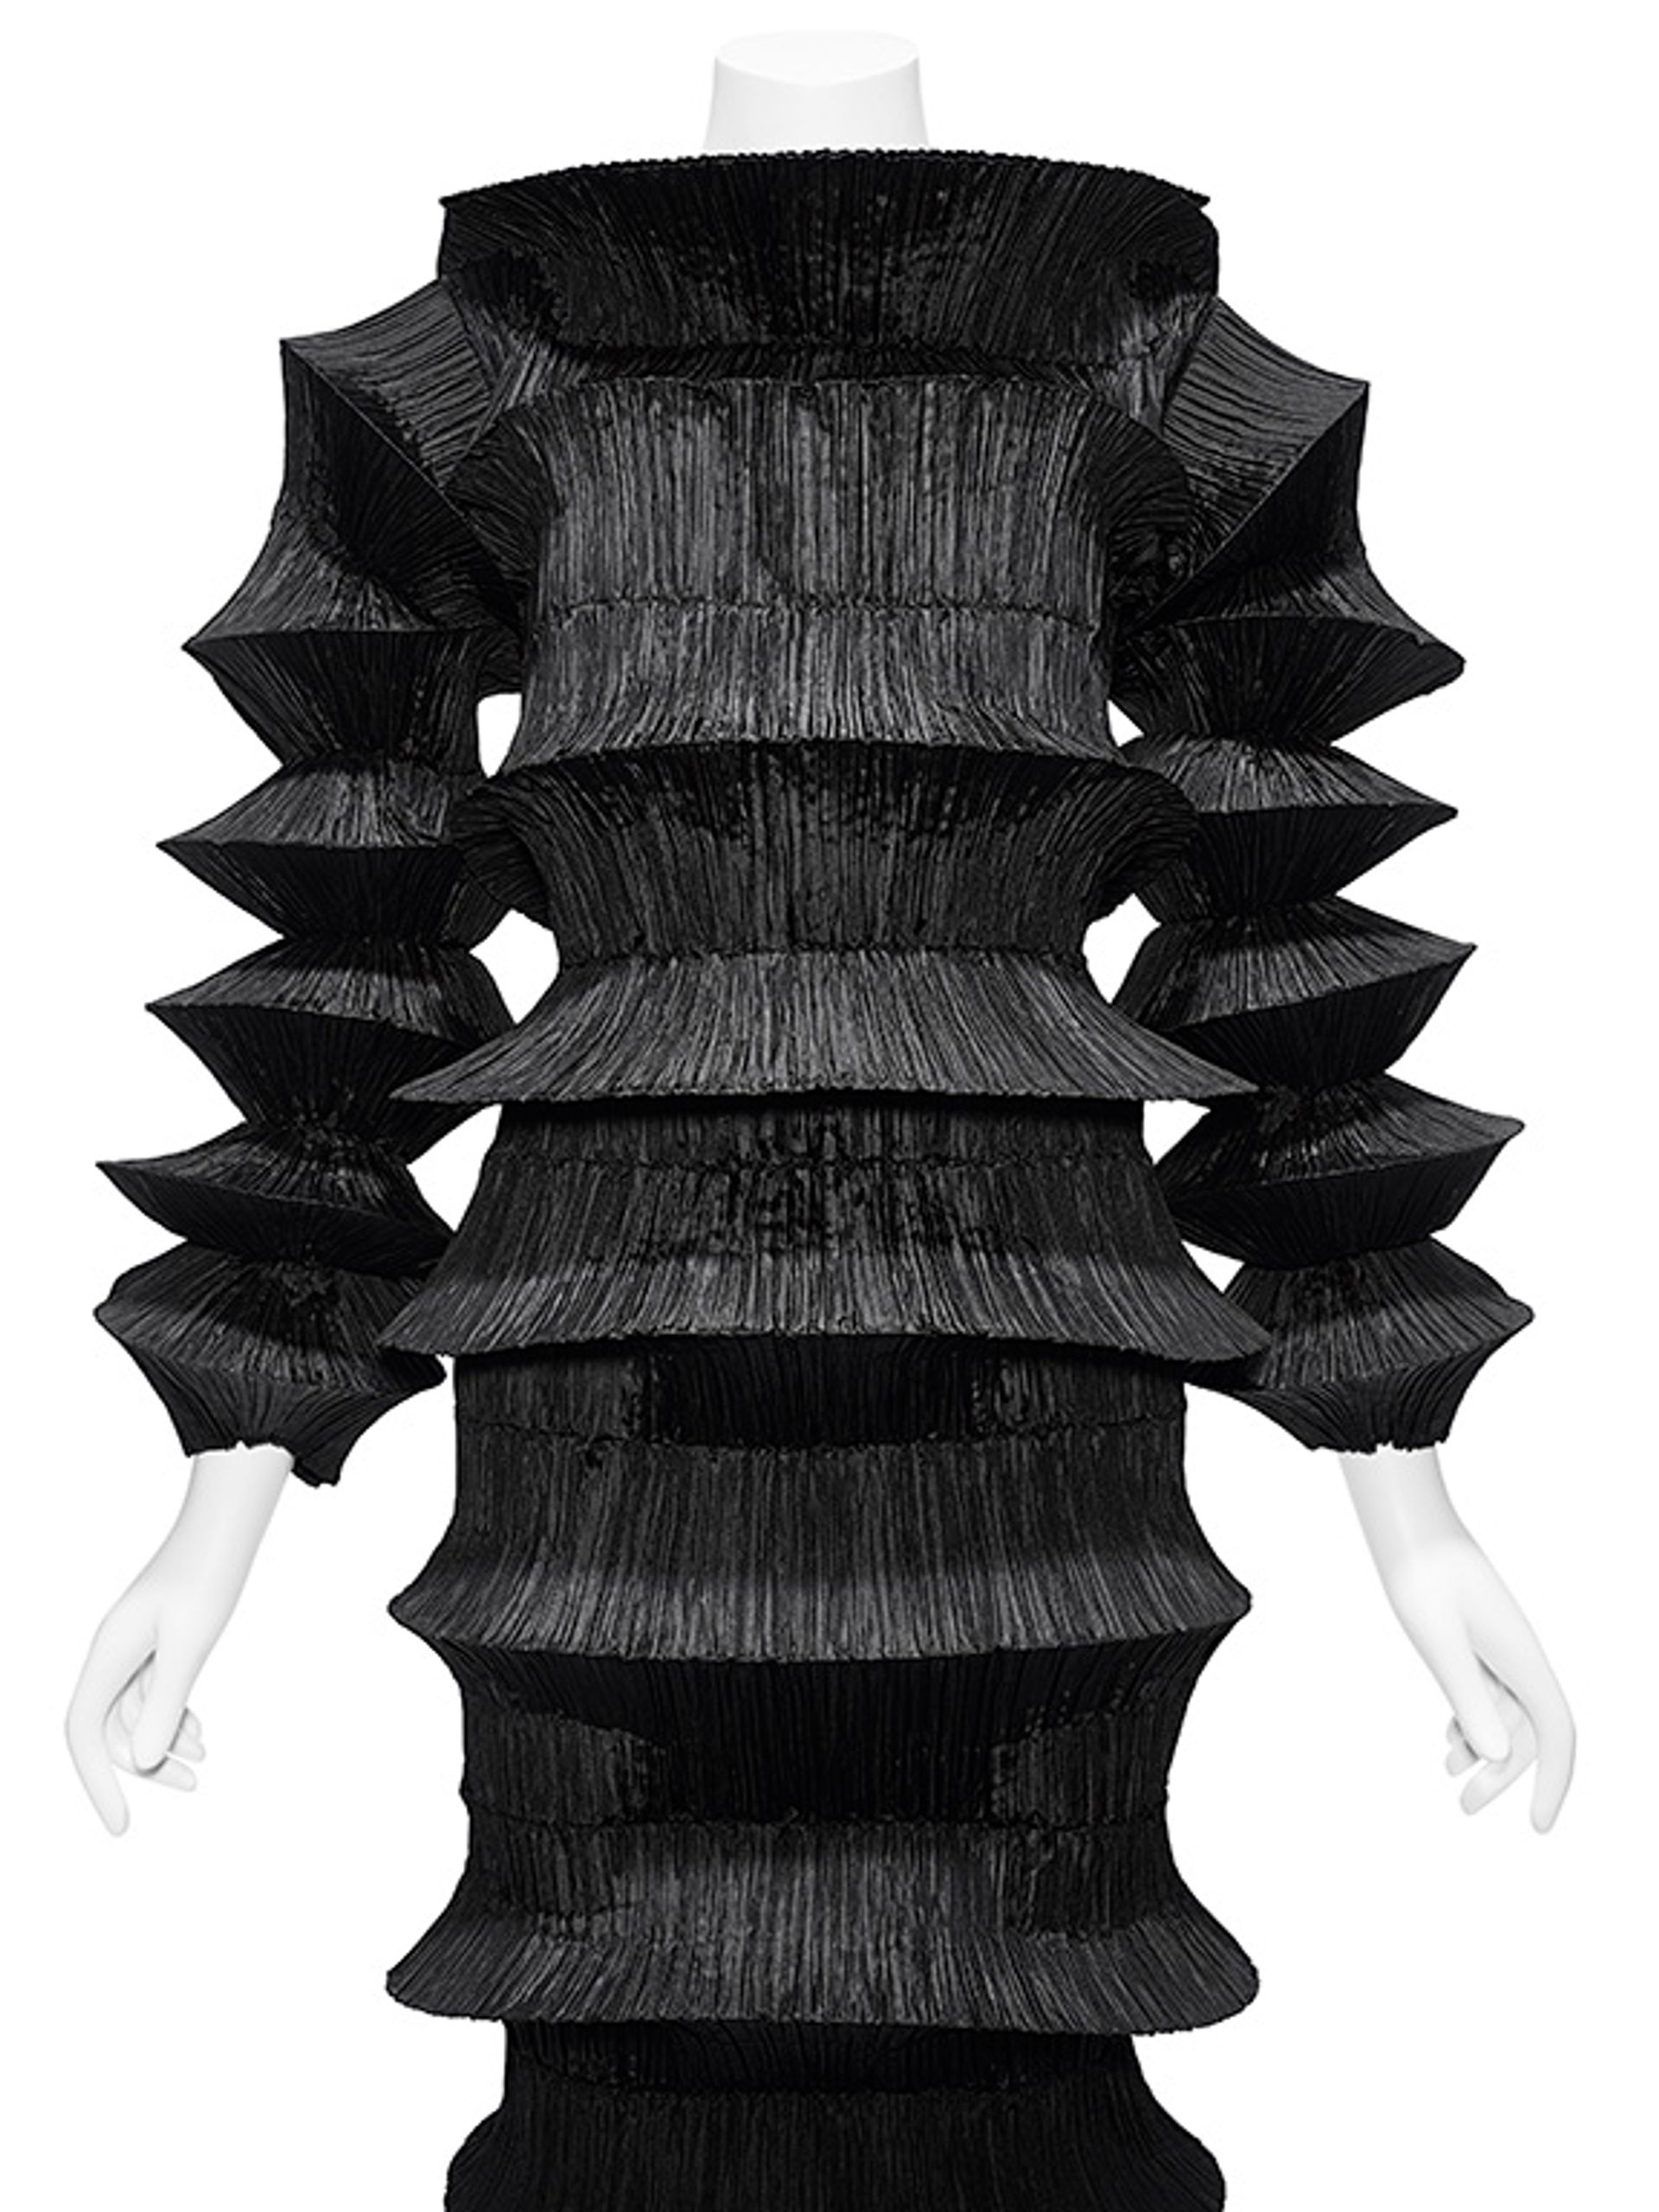 Issey Miyake's flying saucer dress from 1994, which will be featured in About Time: Fashion and Duration at the Metropolitan Museum of Art Courtesy of Metropolitan Museum of Art